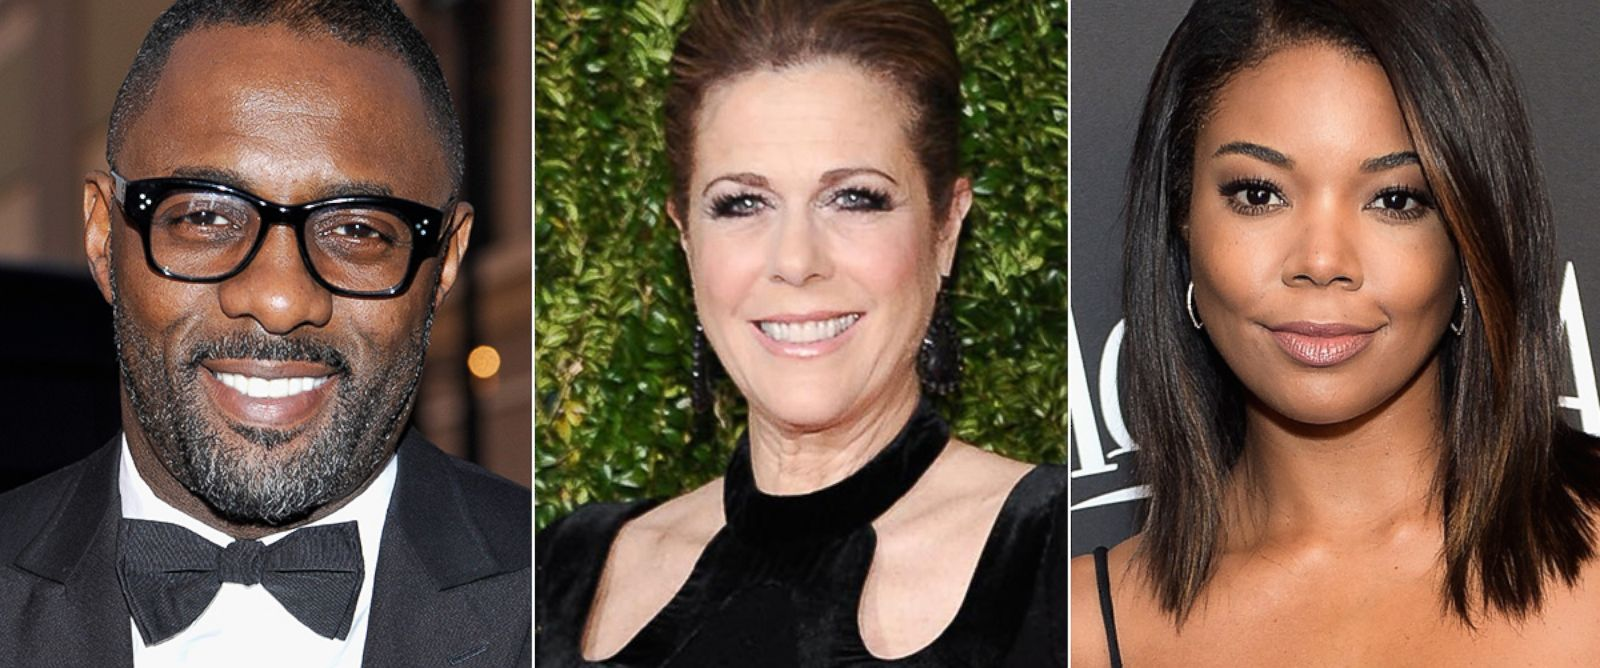 PHOTO: Idris Elba attends the 45th NAACP Image Awards, Feb. 22, 2014. Rita Wilson attends the 69th Annual Tony Awards, June 7, 2015 in New York. Gabrielle Union attends the72nd Annual Golden Globe Awards Post-Party, Jan. 11, 2015, in Beverly Hills.